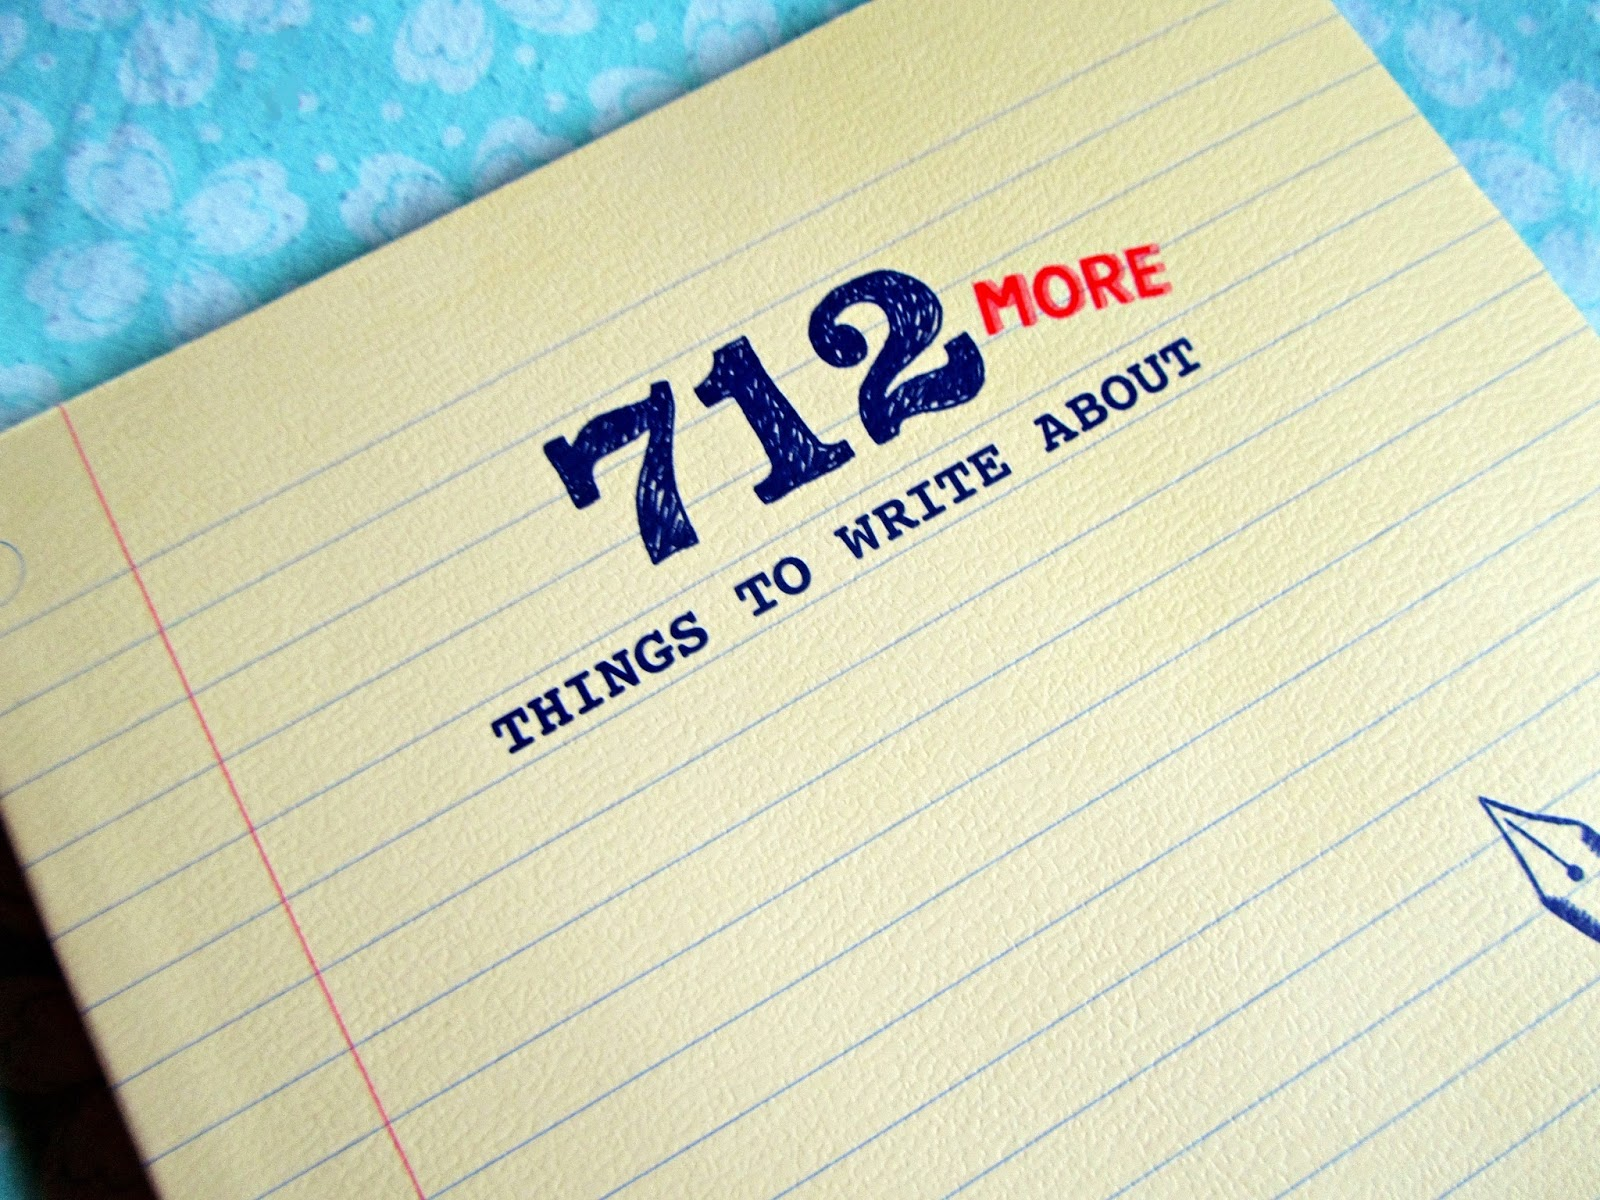 642 Things to Write About